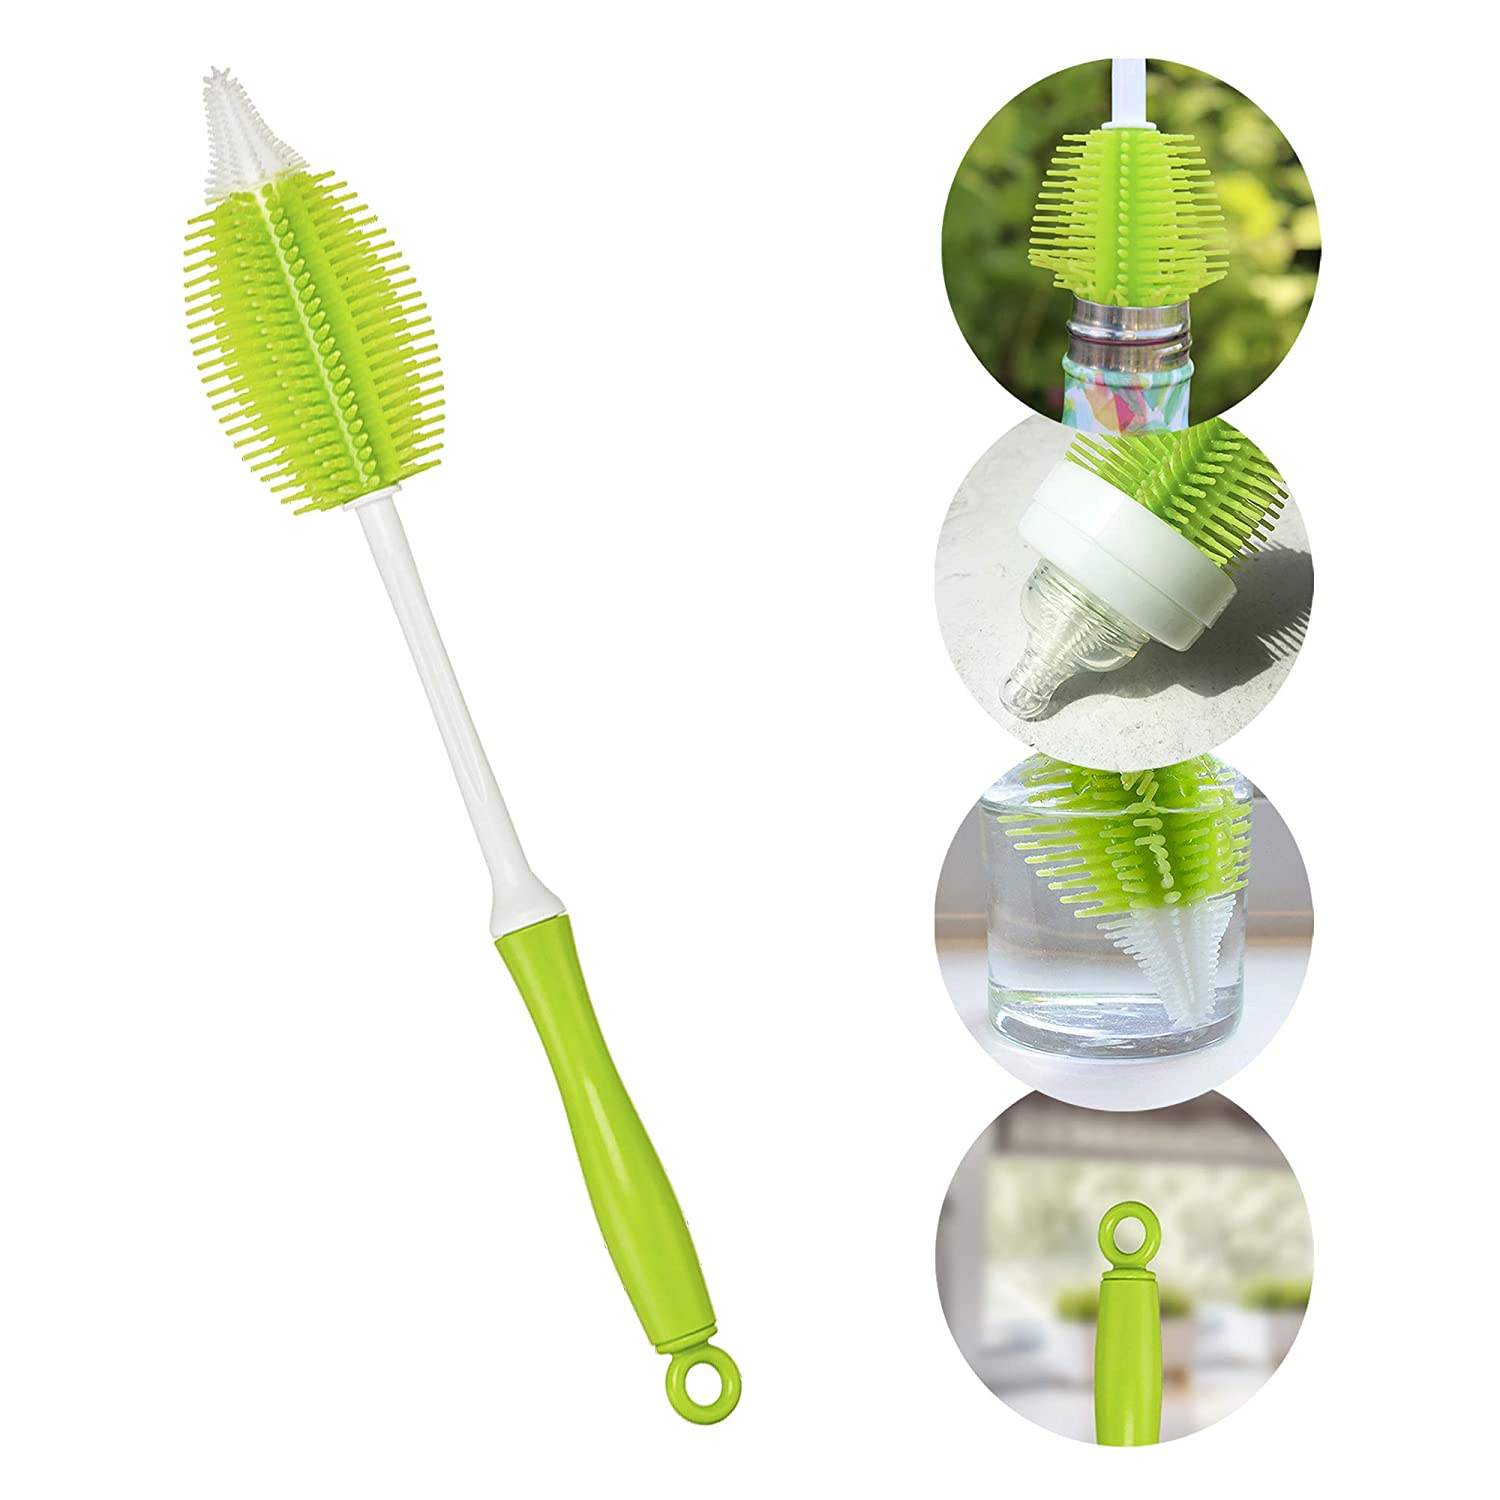 Innobaby 2-in-1 Silicone Bottle Brush, Green: Amazon.es: Bebé